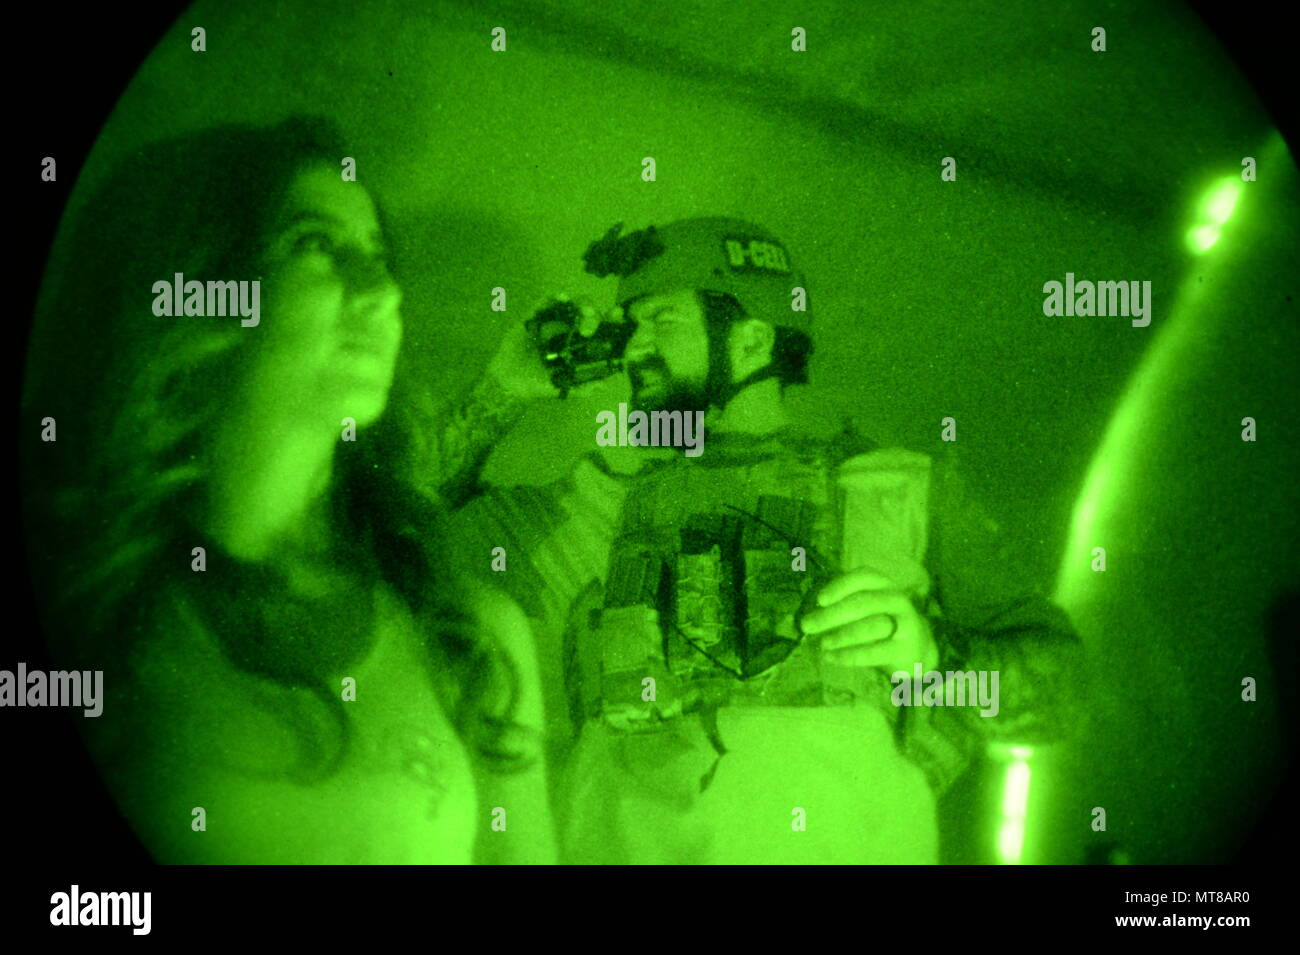 Tampa Bay Buccaneers cheerleader Tessa and offensive guard Evan Smith try out PVS-14 night-vision goggles with U.S. Special Operations Command Deployment Cell personnel during a visit to MacDill Air Force Base in Tampa, Fla., Nov. 7, 2017. The football players and cheerleaders toured USSOCOM and other base facilities to meet with currently serving personnel and to experience a glimpse of military life. (Photo by U.S. Air Force Master Sgt. Barry Loo) Stock Photo